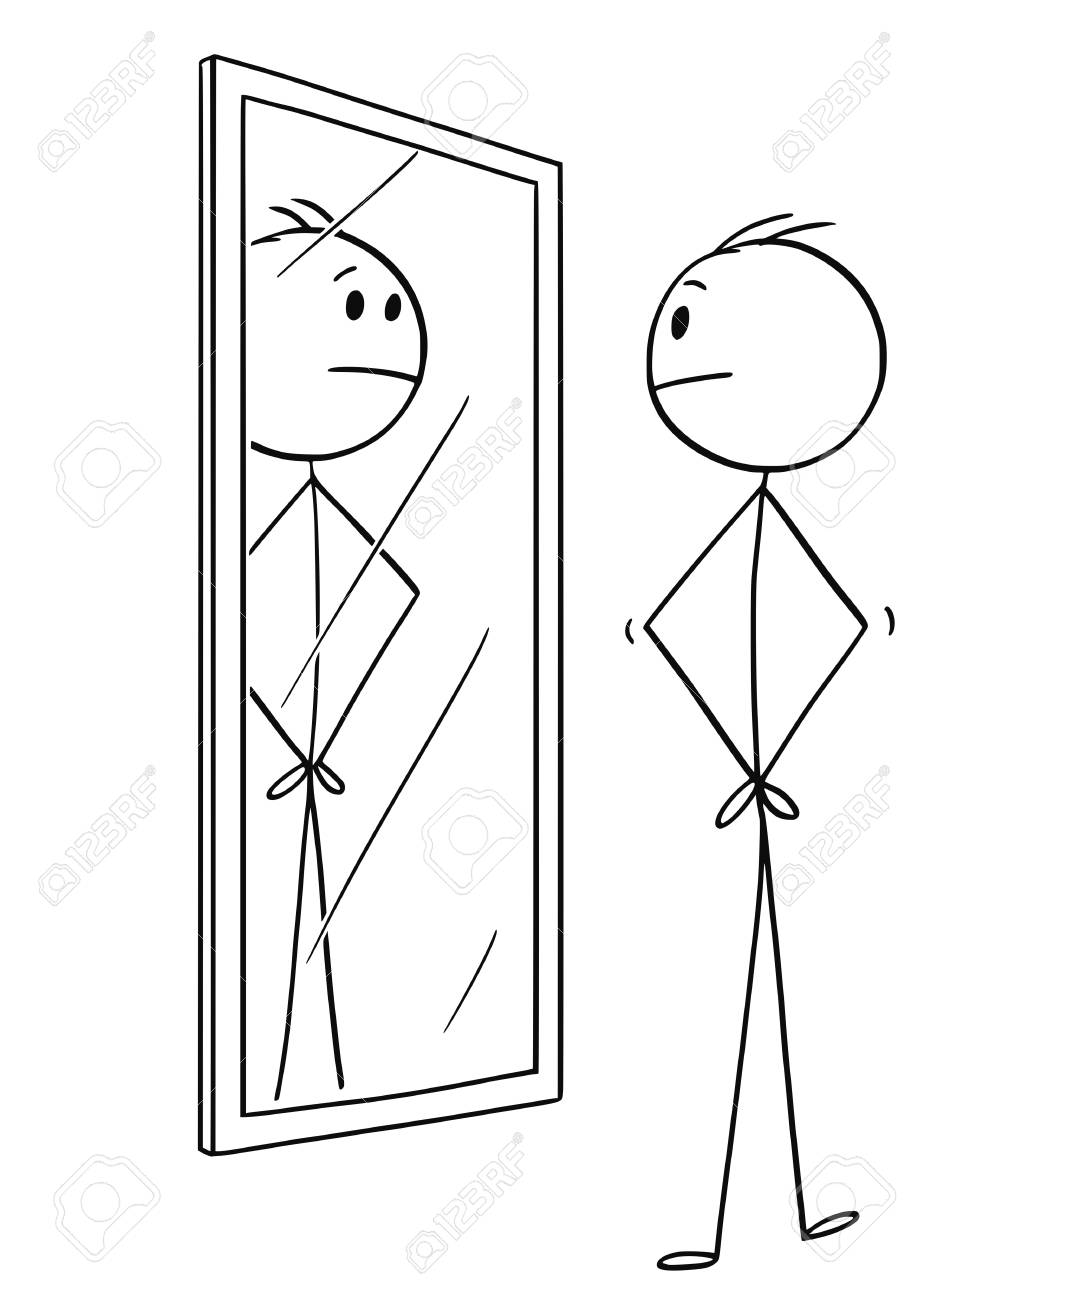 Cartoon stick drawing conceptual illustration of man looking at himself in the mirror. - 110690041